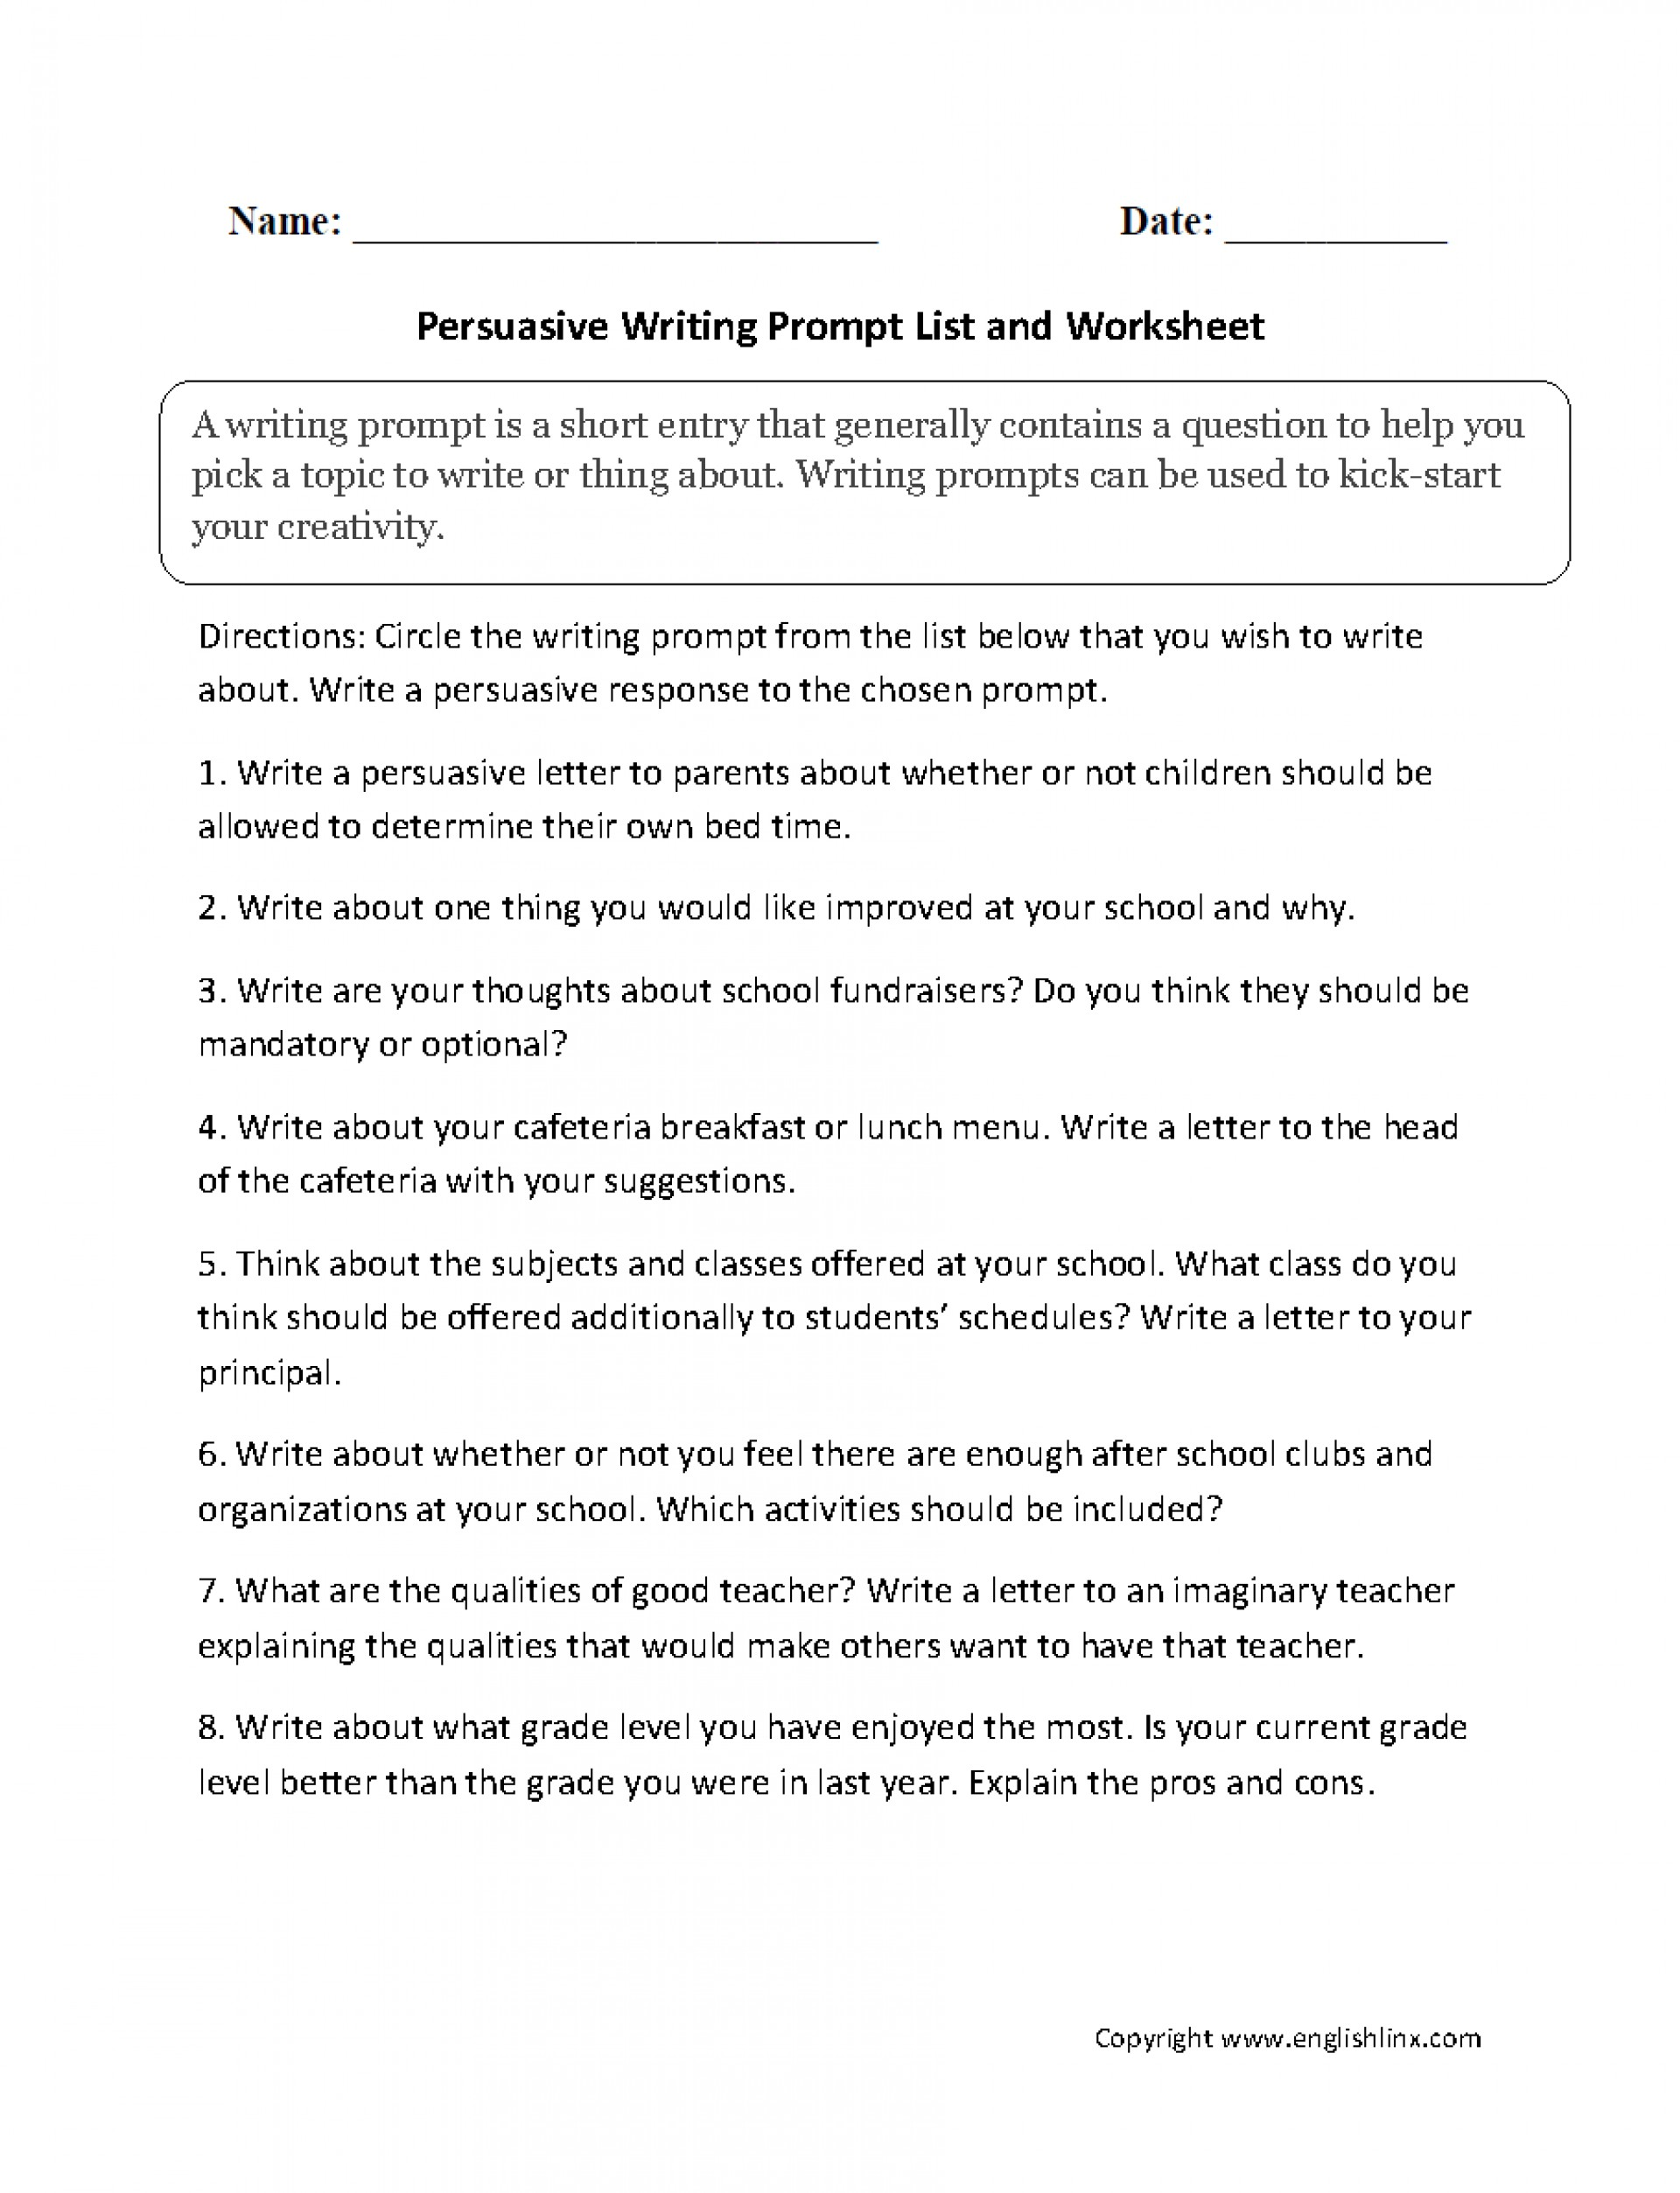 009 Paragraph Essay Writing Prompts Middle School Example Persuasive Prompt Incredible 5 1920